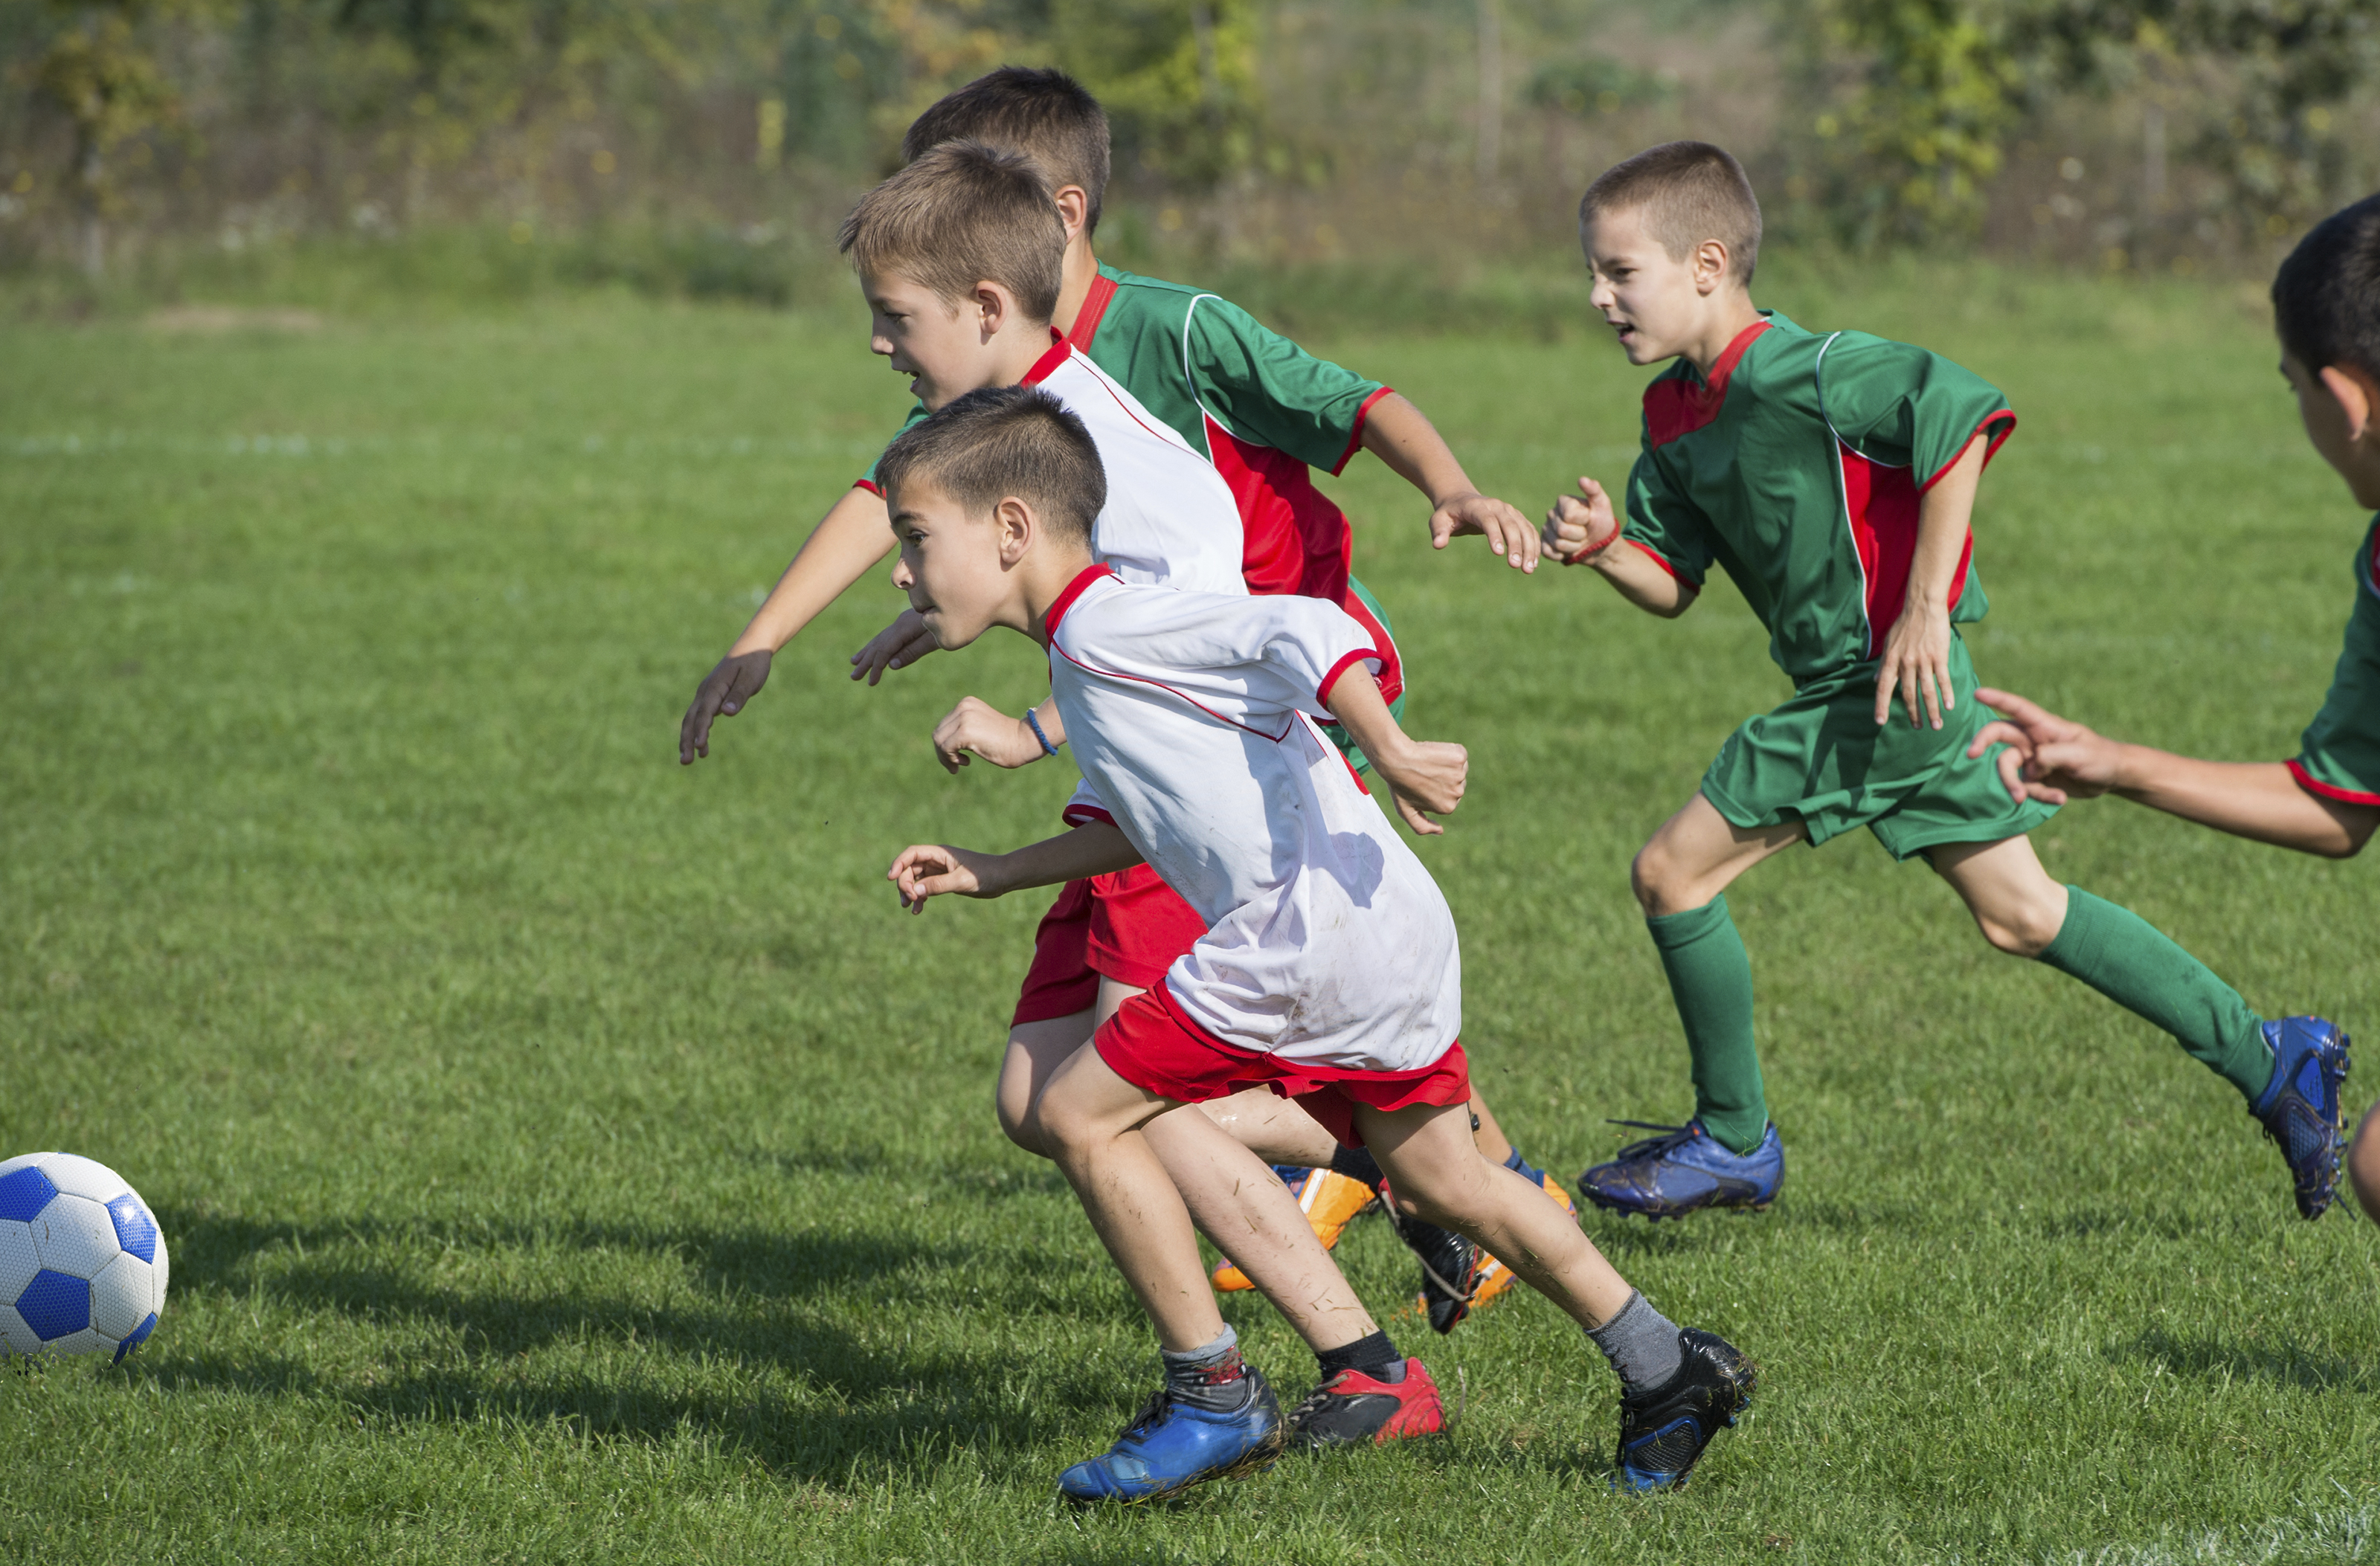 Focus on One Sport Boosts Injury Risk for Kids